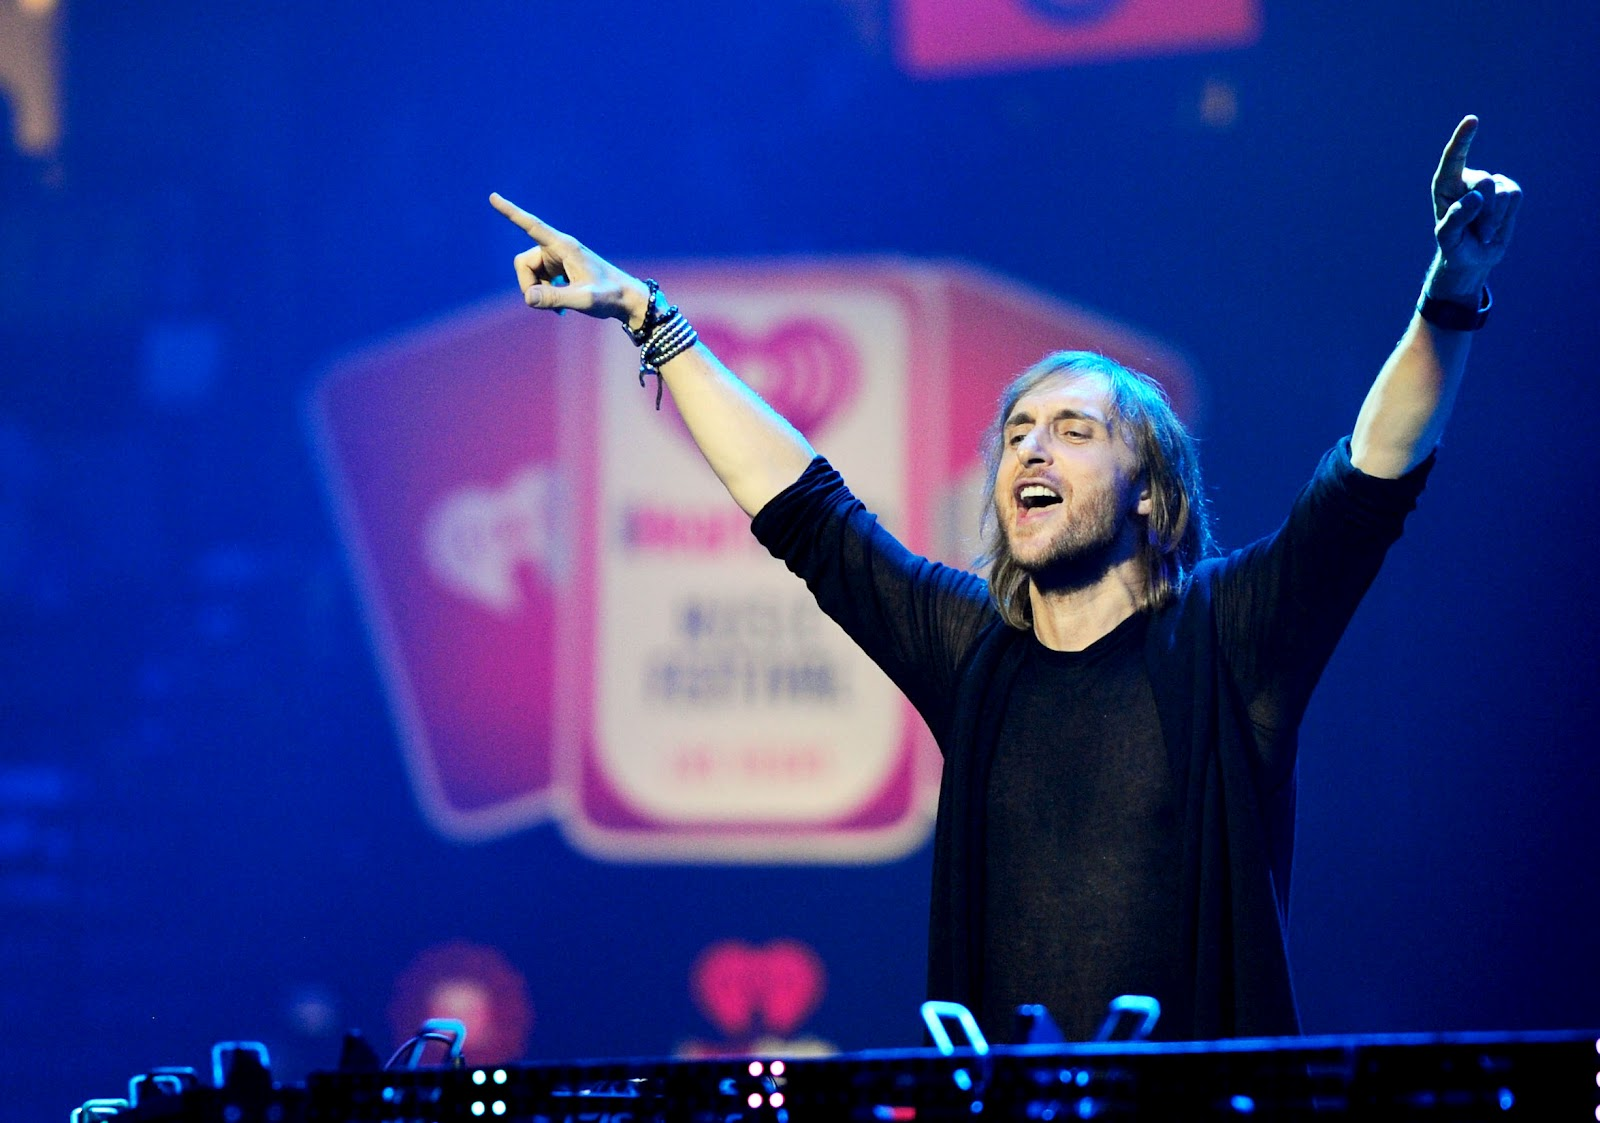 Best Iphone 5 Home Screen Wallpapers 30 Best David Guetta Photographs Which Is Rocking Hdpixels